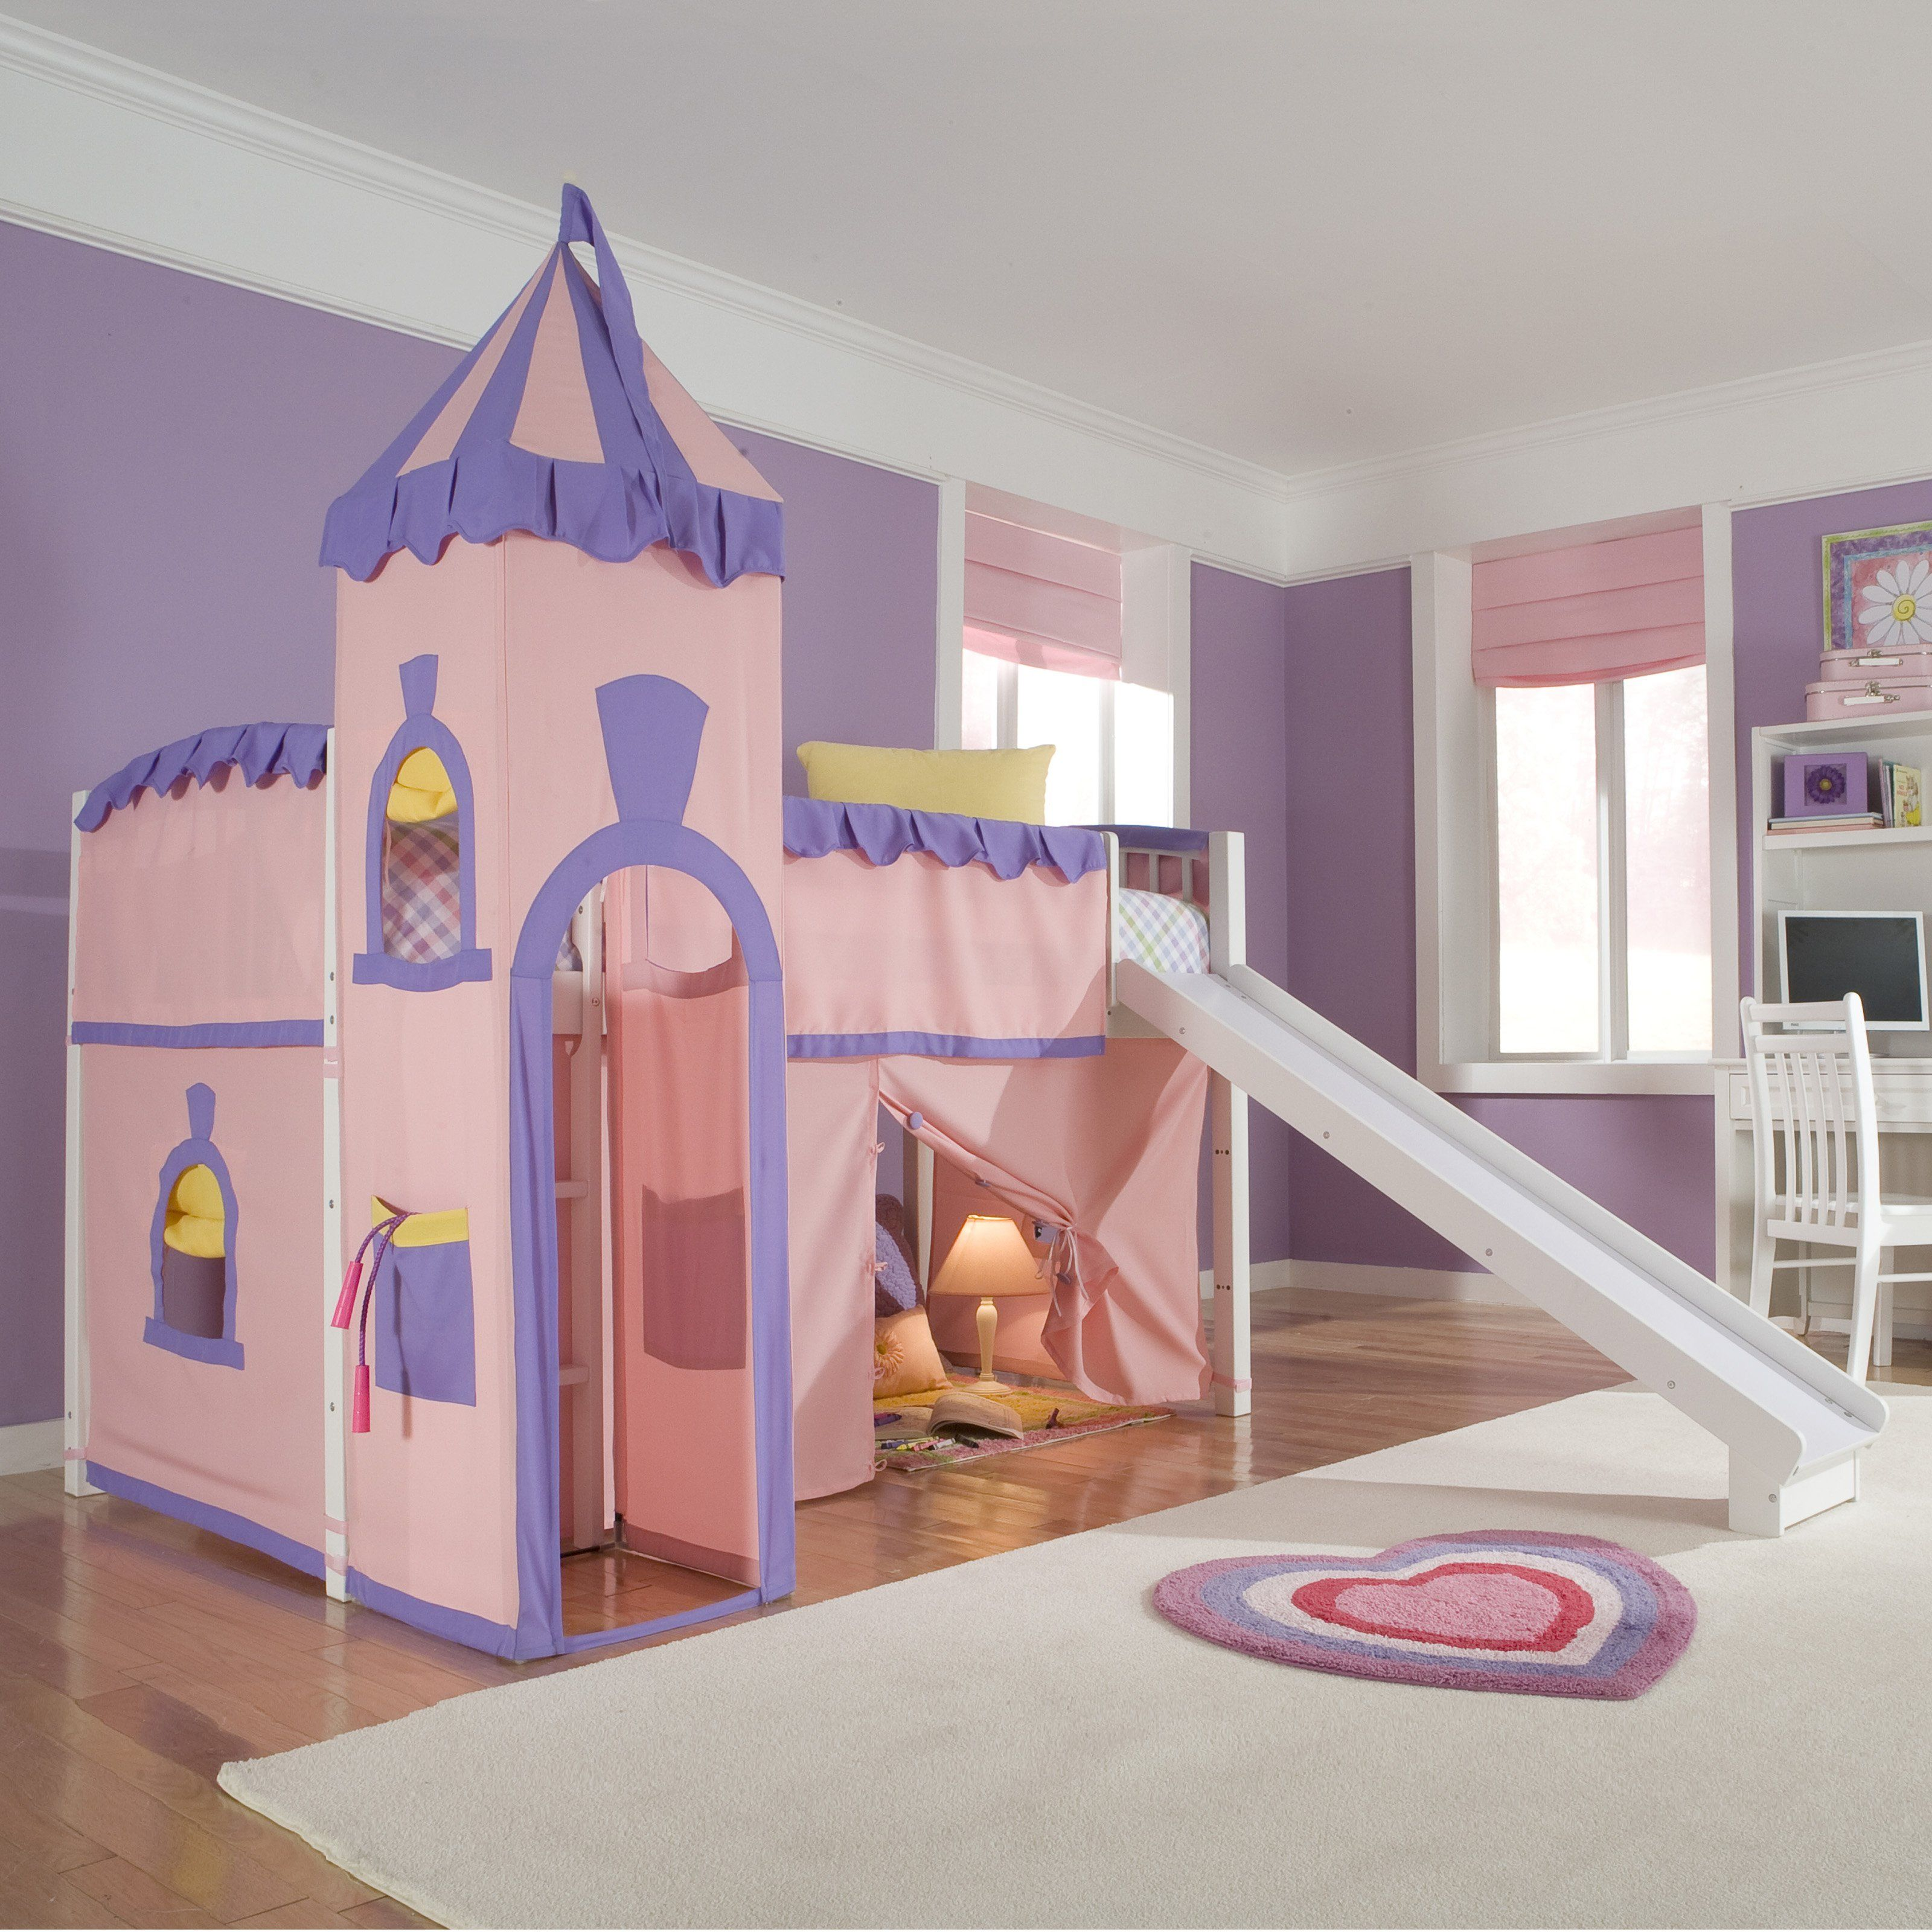 Or this one... Schoolhouse Princess Loft Bed $619.00 | Ideas for ...